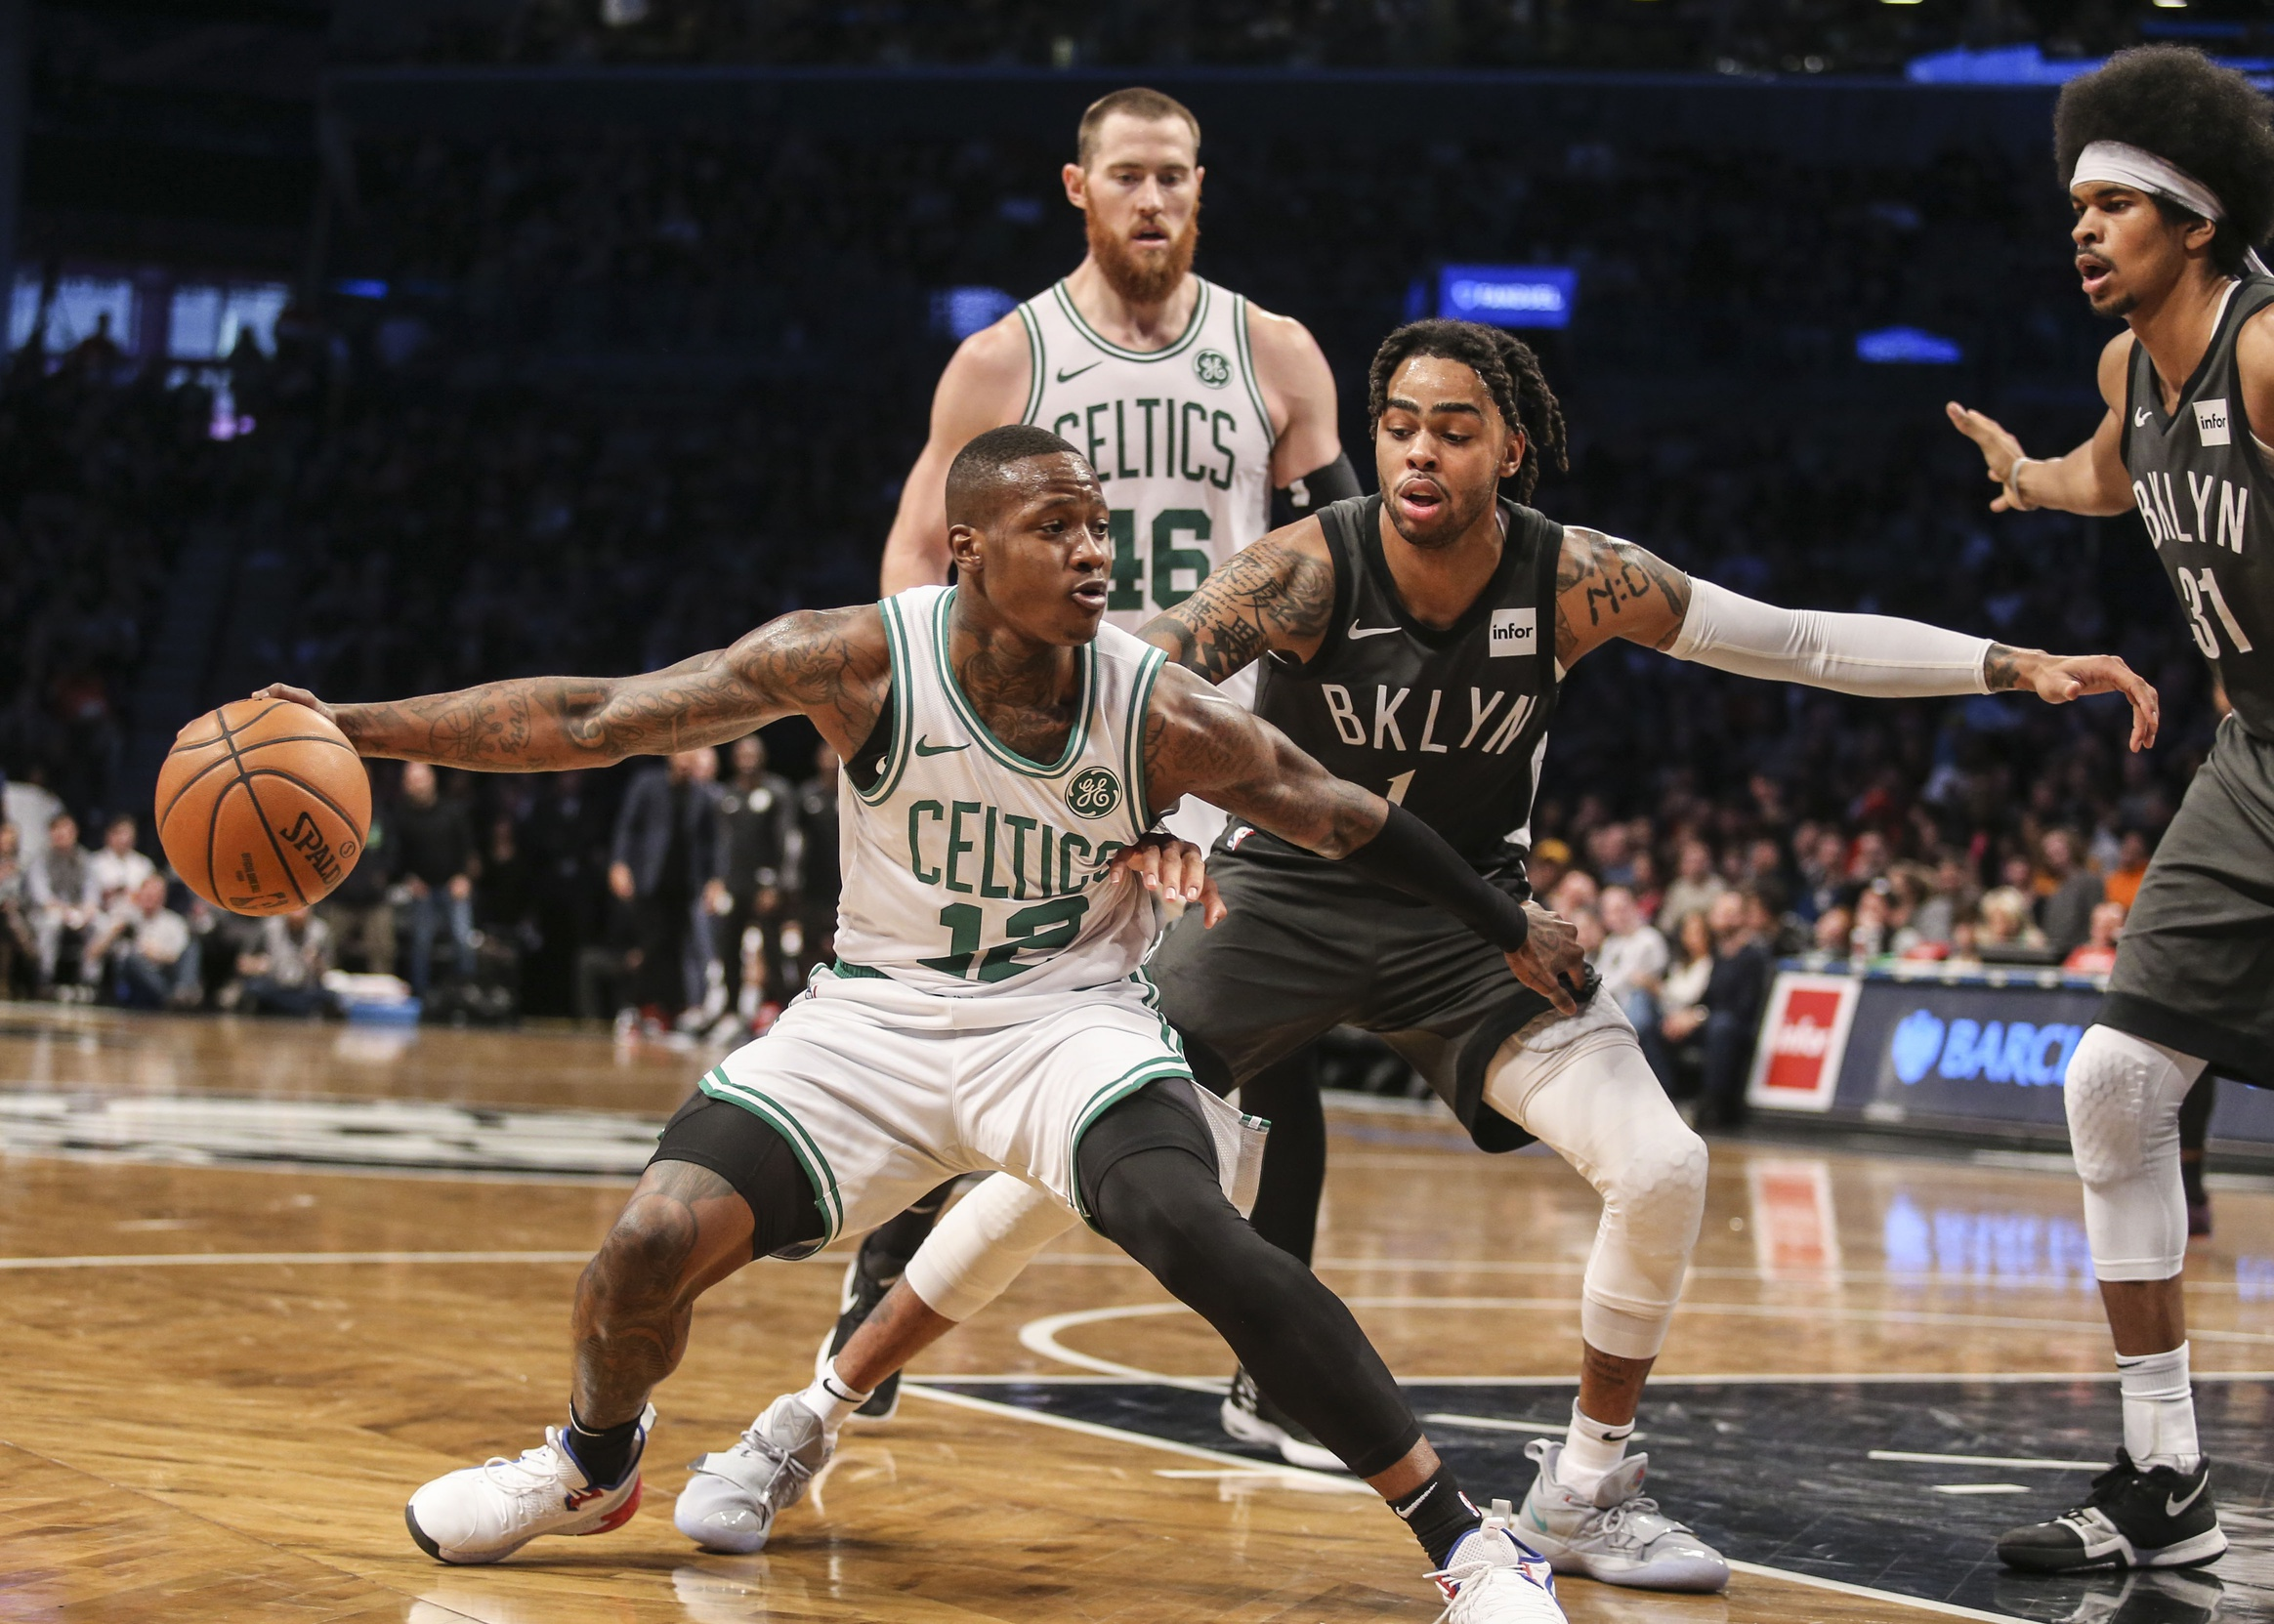 Your Morning Dump... Where the Celtics load management is really pissing me off